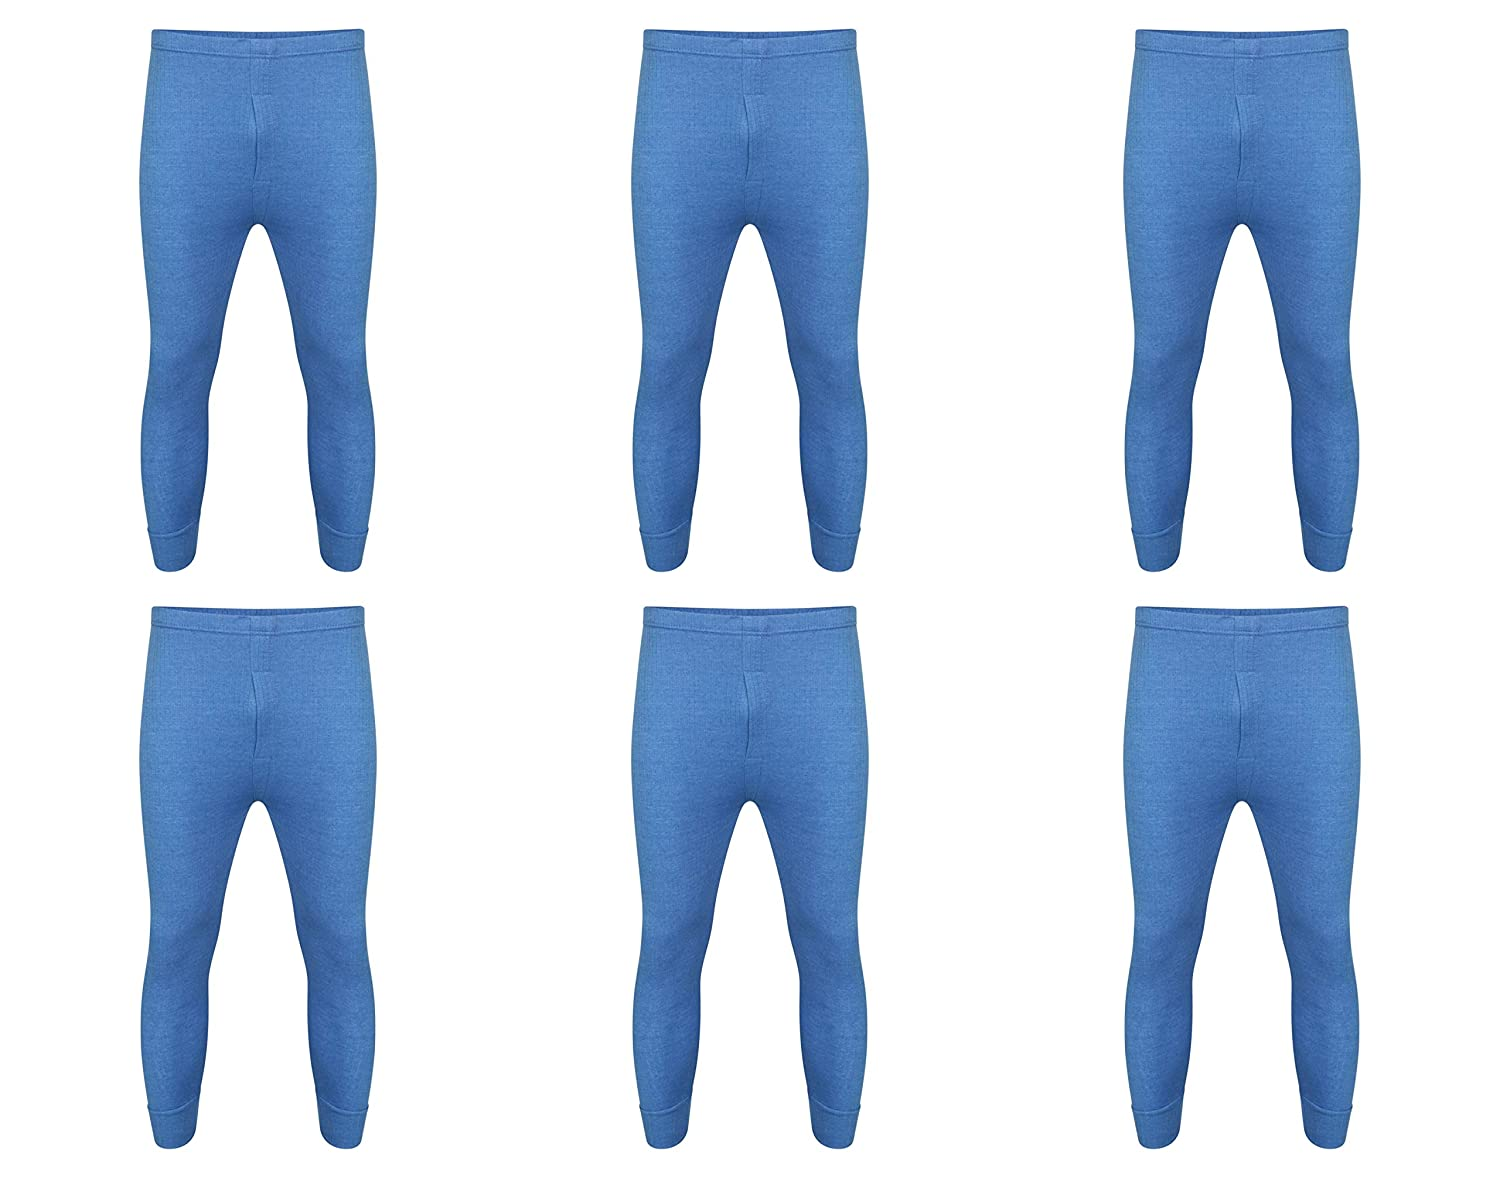 6 x Mens Thermal Long Johns Top Bottom Underwear Trousers T Shirt Set S M L XL